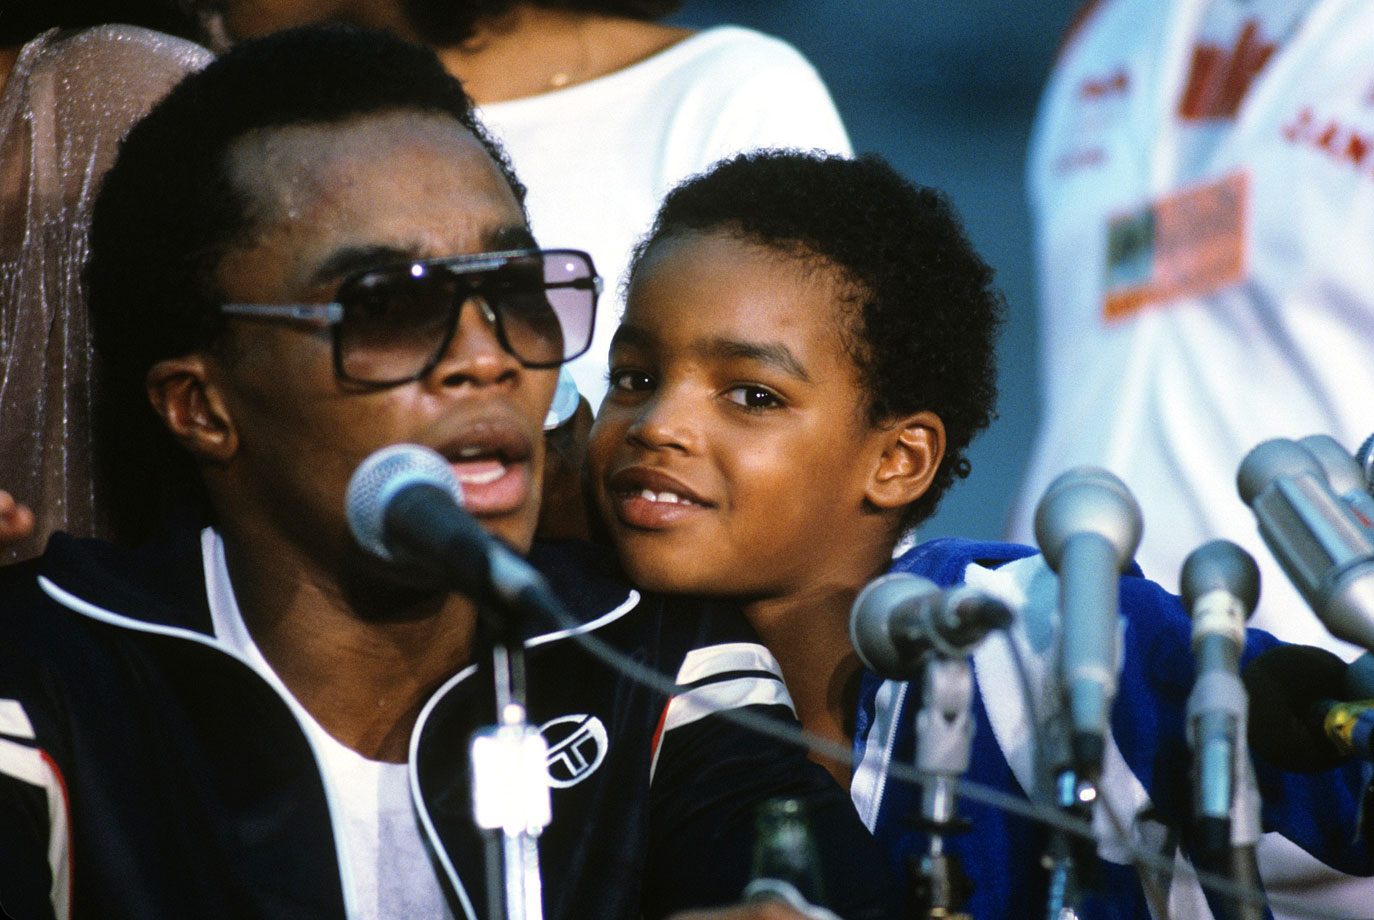 Sugar Ray Leonard and son Ray Jr.